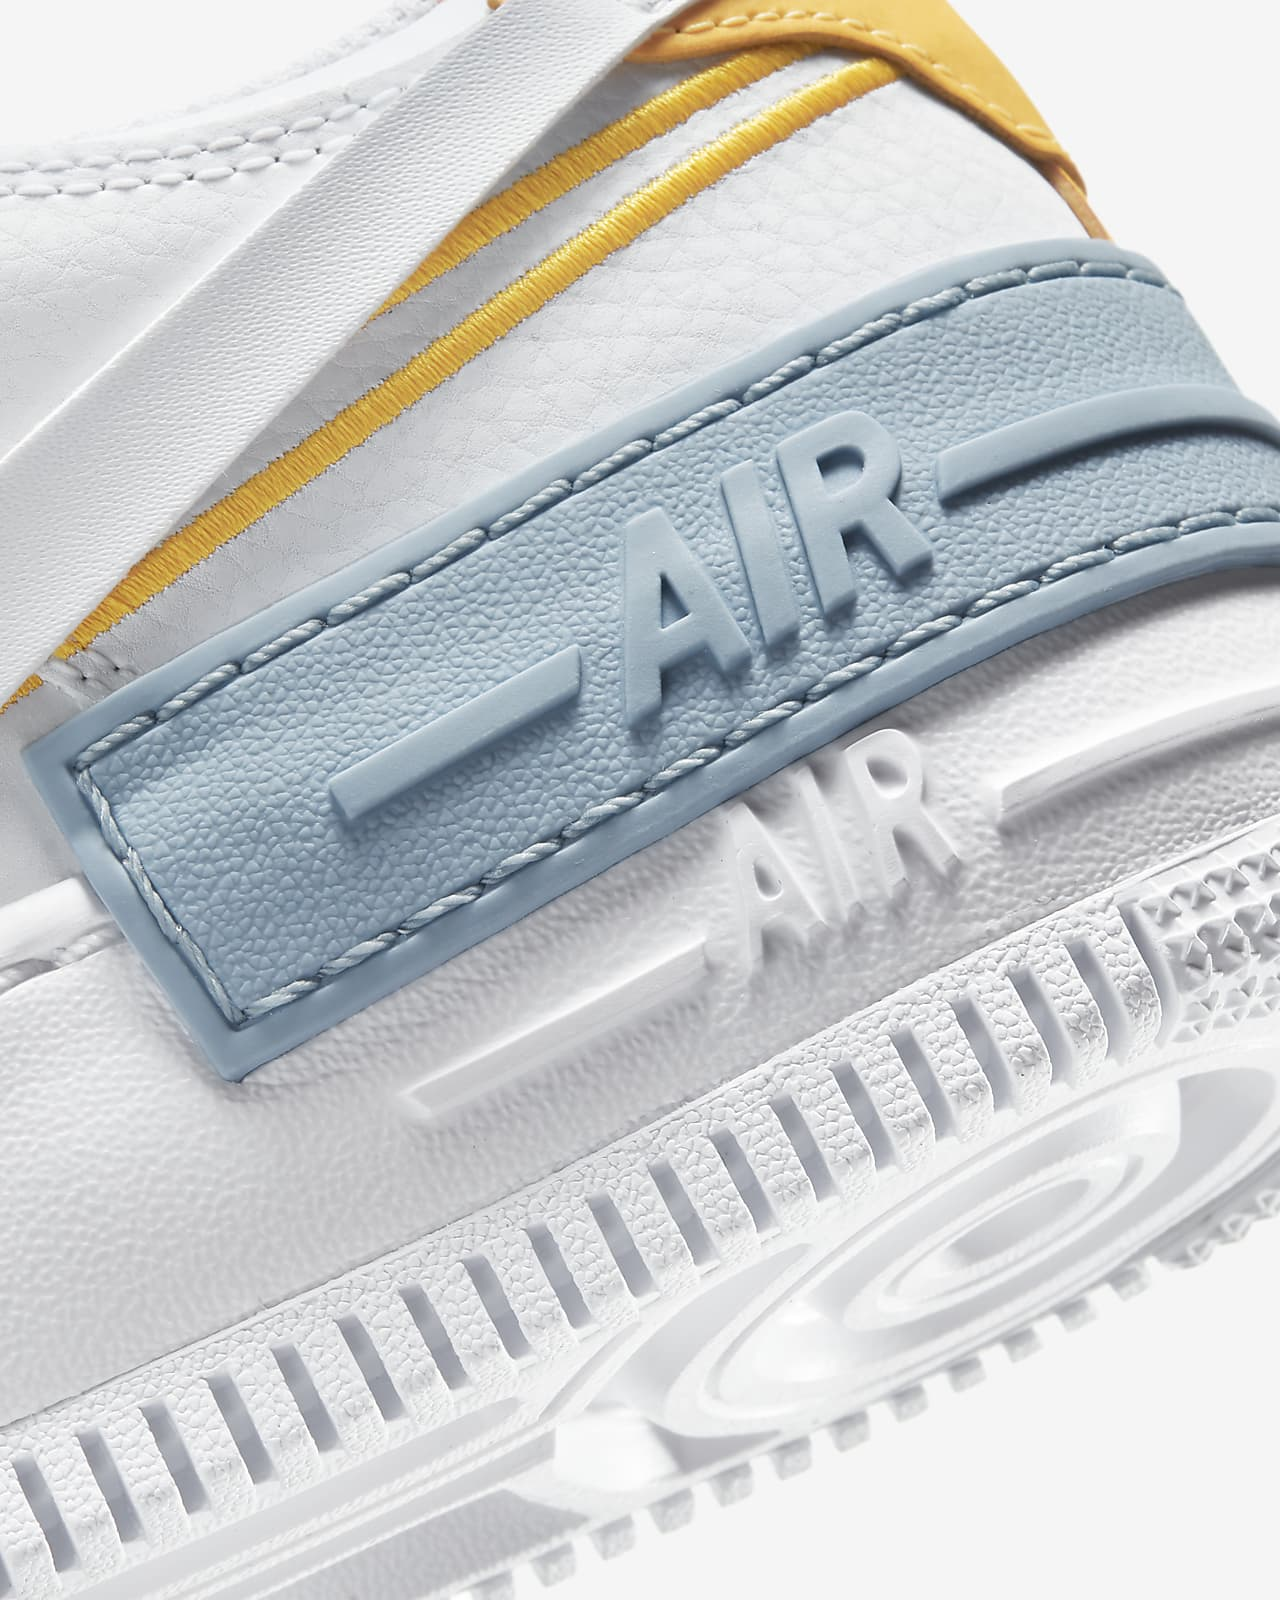 Calzado Para Mujer Nike Air Force 1 Shadow Nike Com The date 2020 is meanwhile embossed on a cream. calzado para mujer nike air force 1 shadow